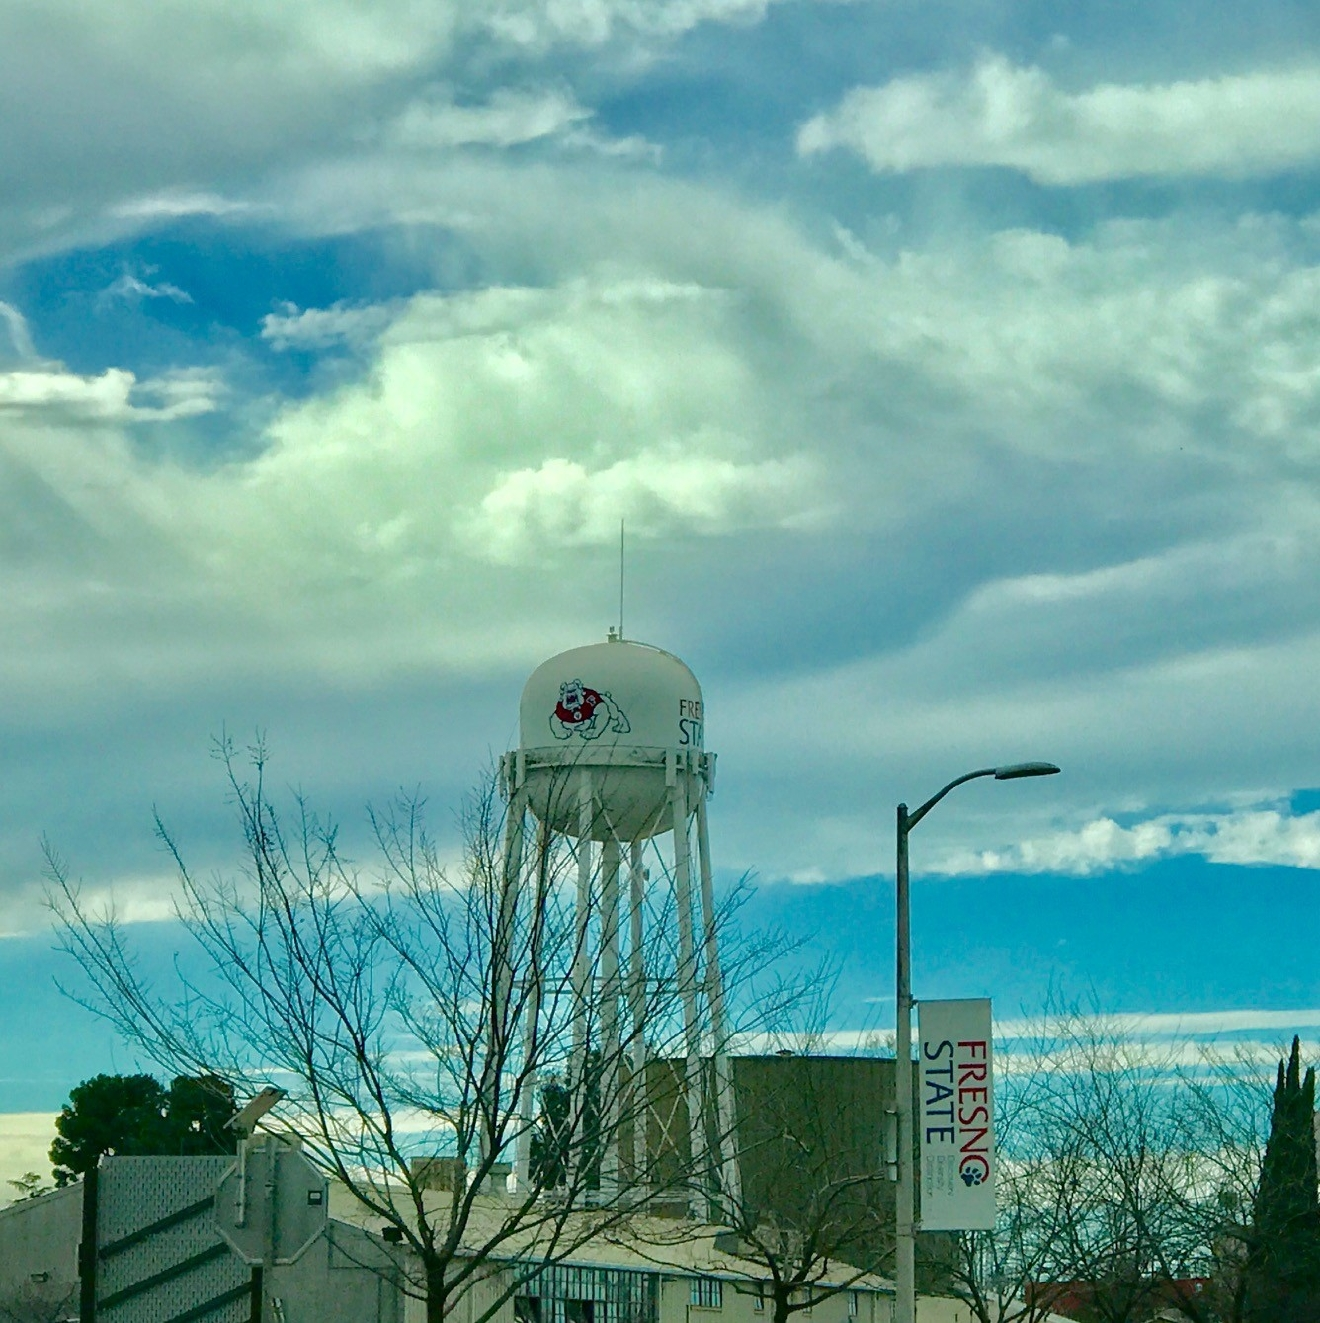 Sunlight and clouds above the Fresno State water tower by Traci Obata 2-16-17